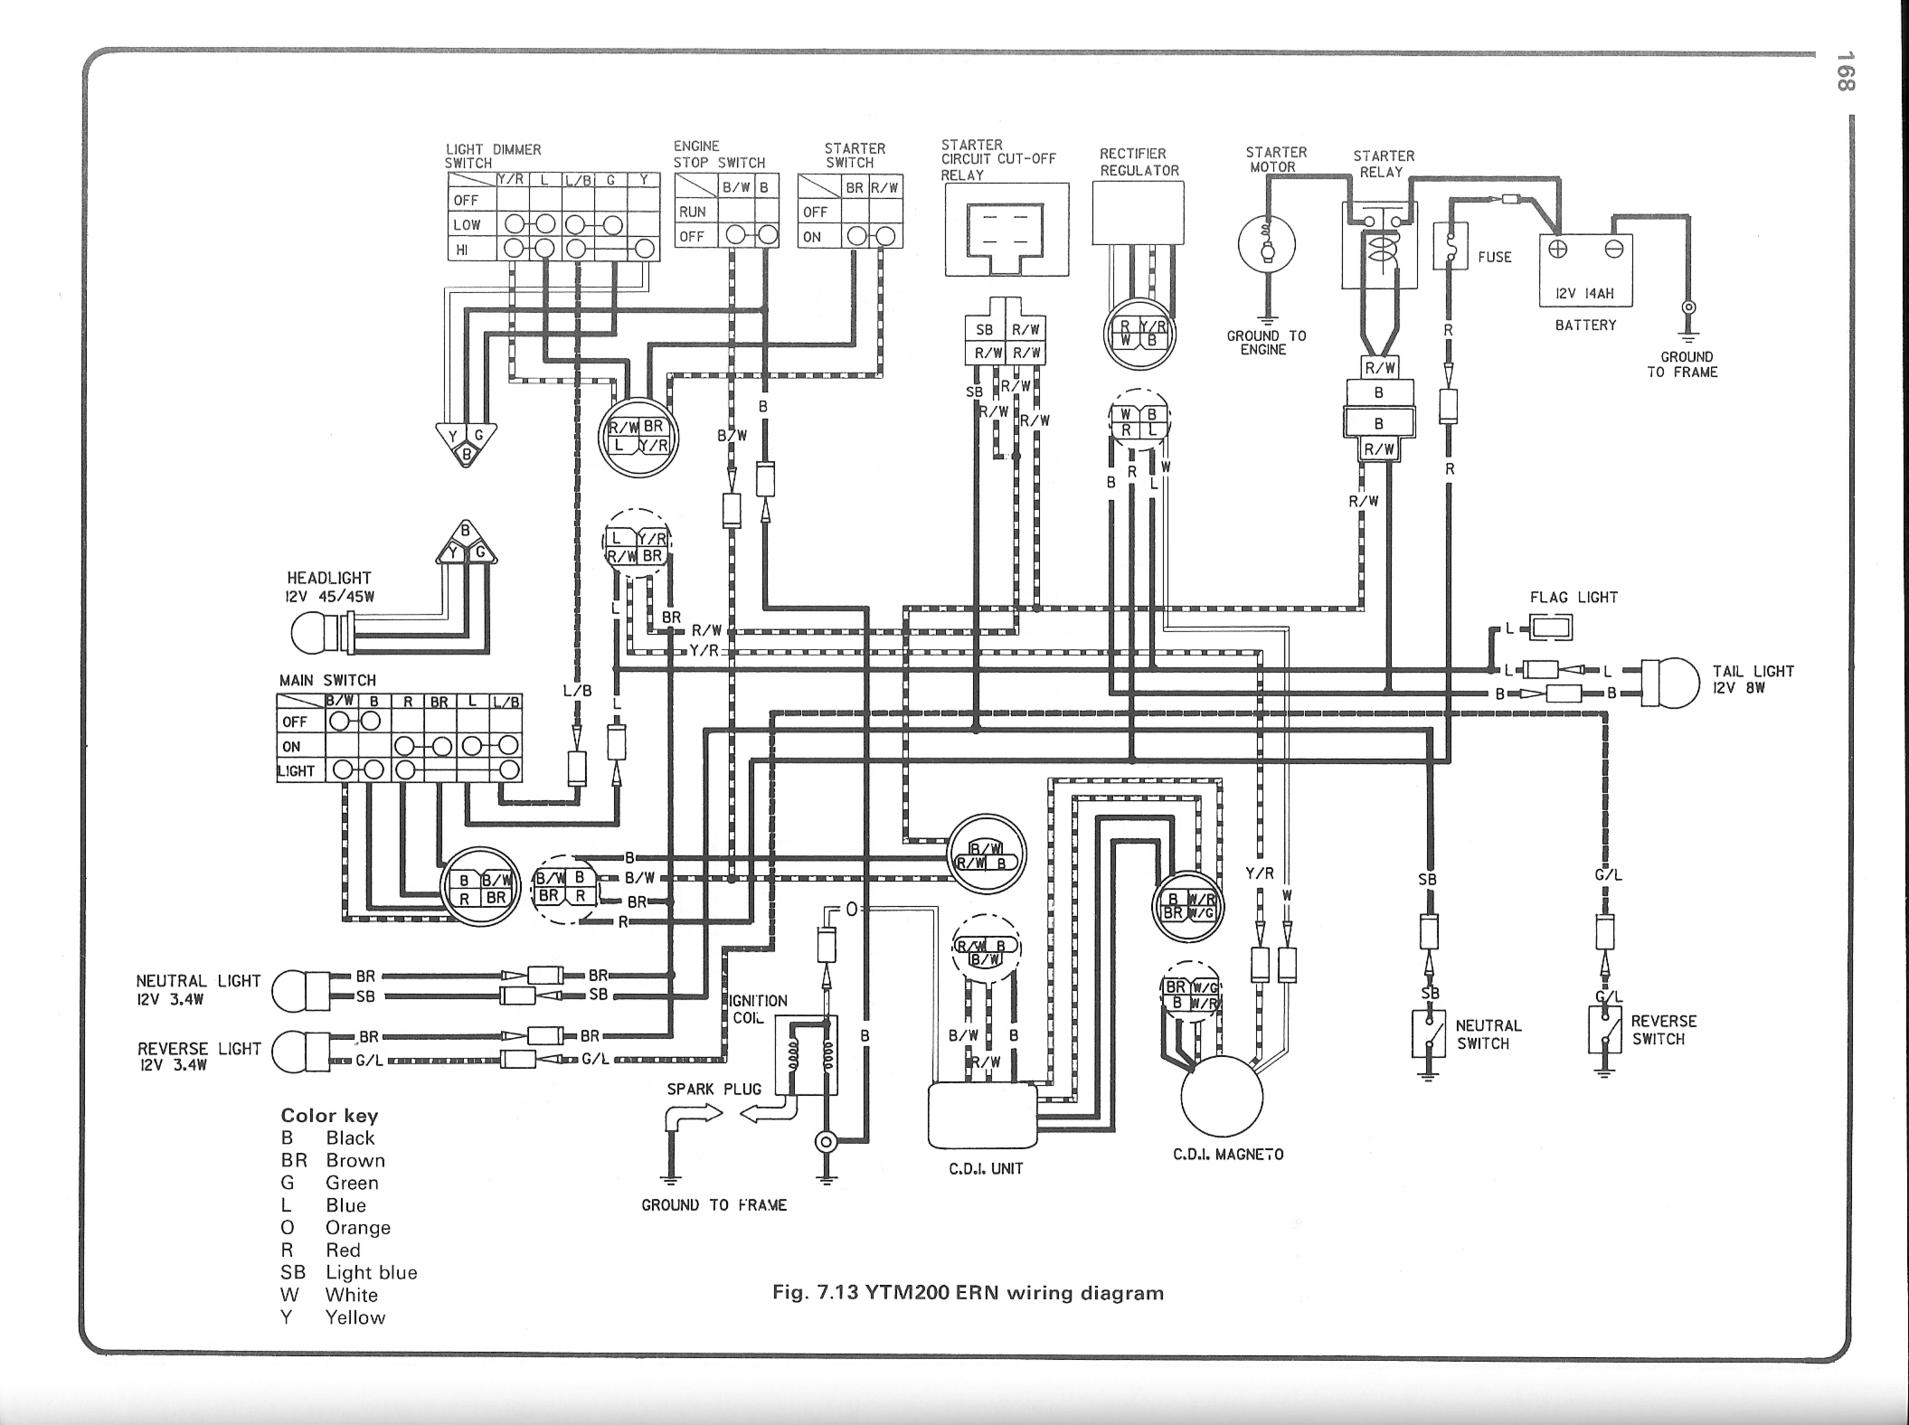 wiring diagram yamaha moto 4 with 243 Ytm200ern Yamahauler Wiring Diagram on R11 C Wiring Diagram Electric Mobility moreover B 01 additionally 309880 Wiring Diagram 1987 Bayou Klf 300 A likewise 368074 1988 Yamaha Big Bear 350 Cdi additionally WiringYamaha.